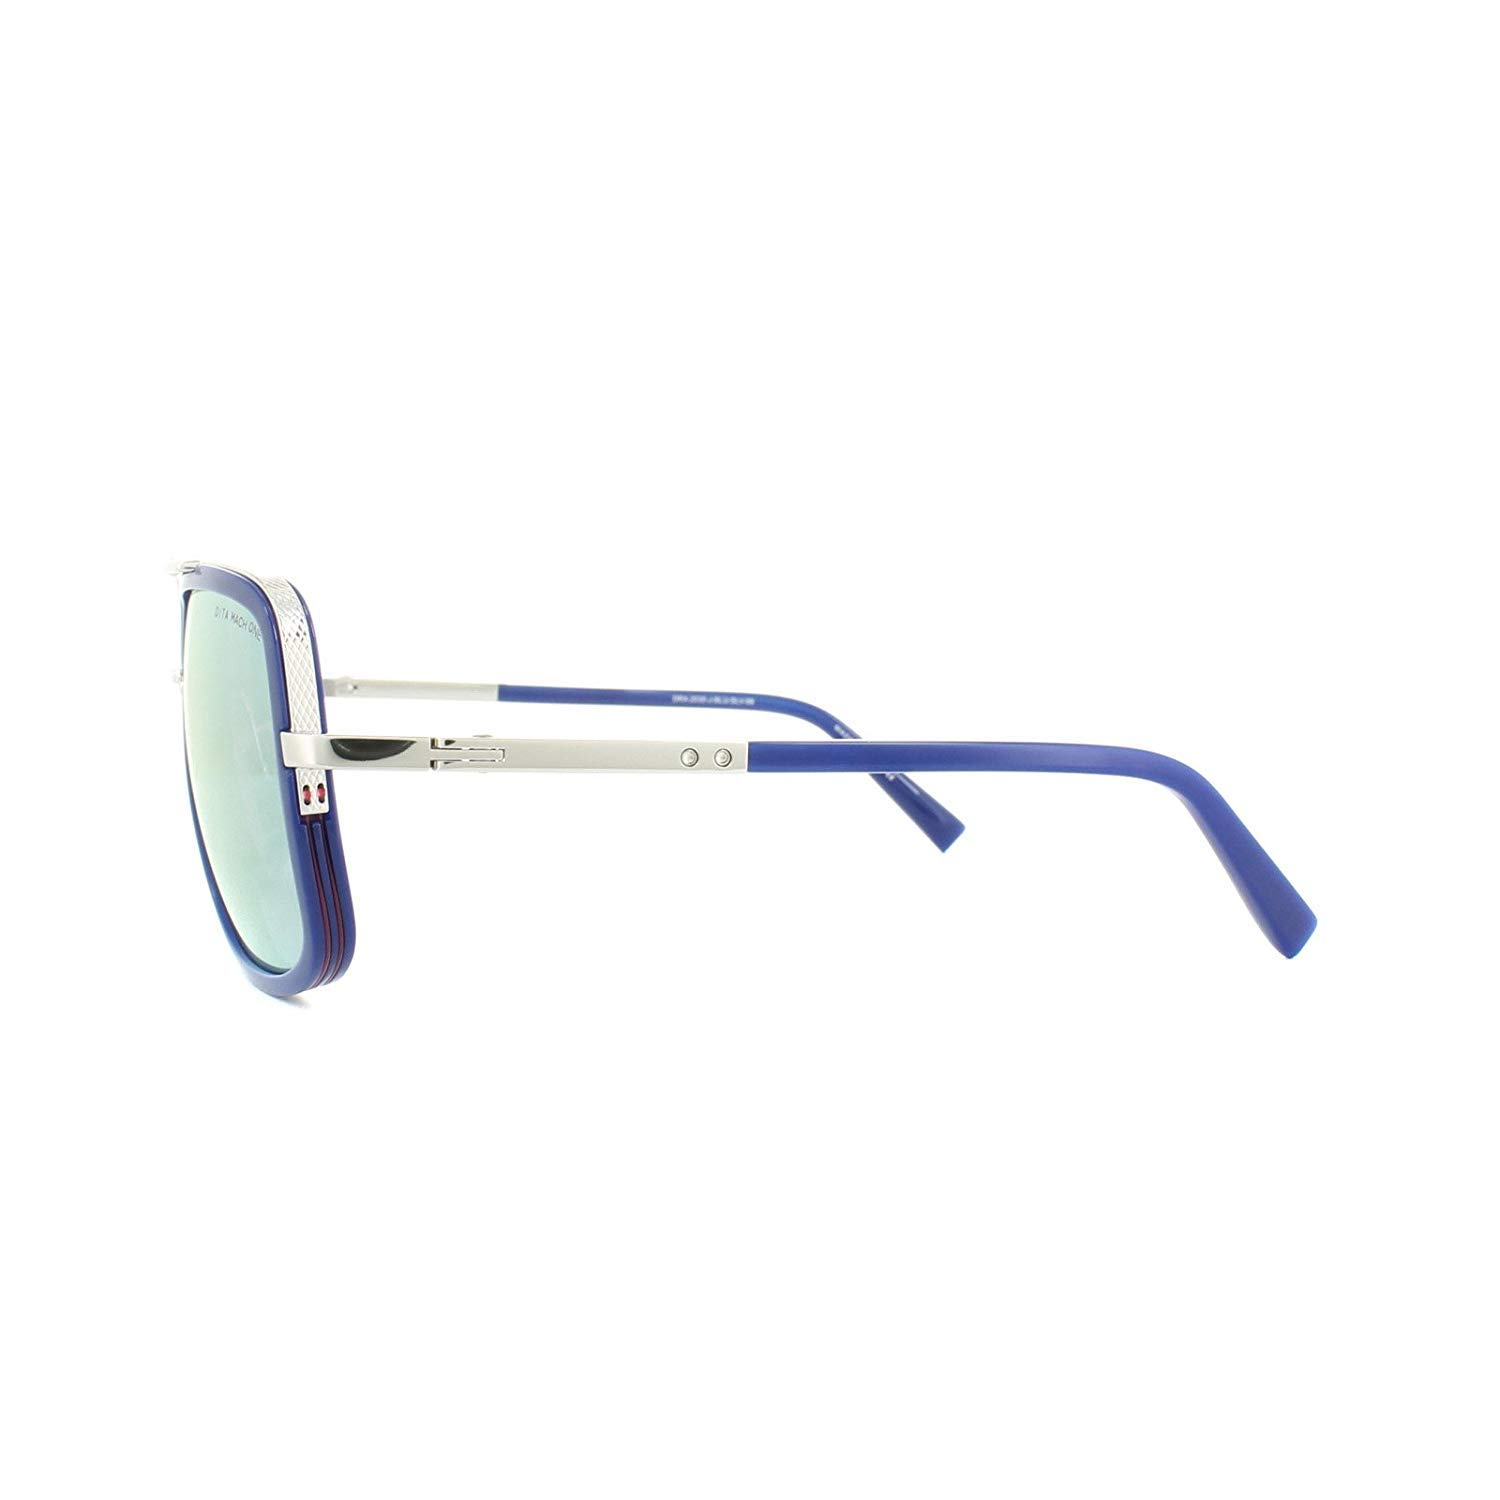 a4a6fb9e8c Dita Sunglasses Mach-One DRX-2030-J-59 Blue Silver Dark Grey Gold Mirror   Amazon.ca  Luggage   Bags